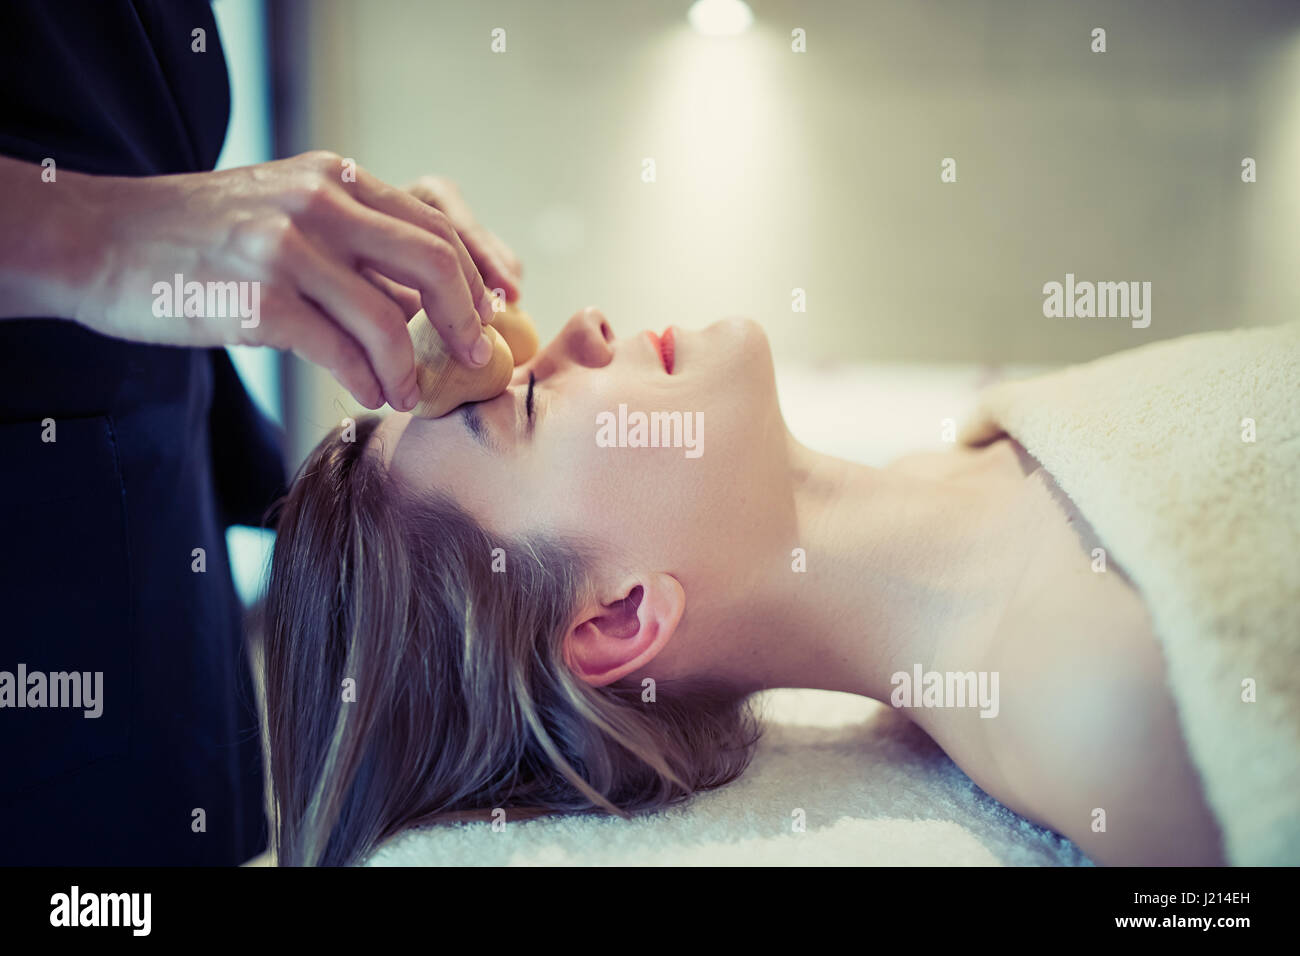 Relaxing anti stress facial massage at resort - Stock Image